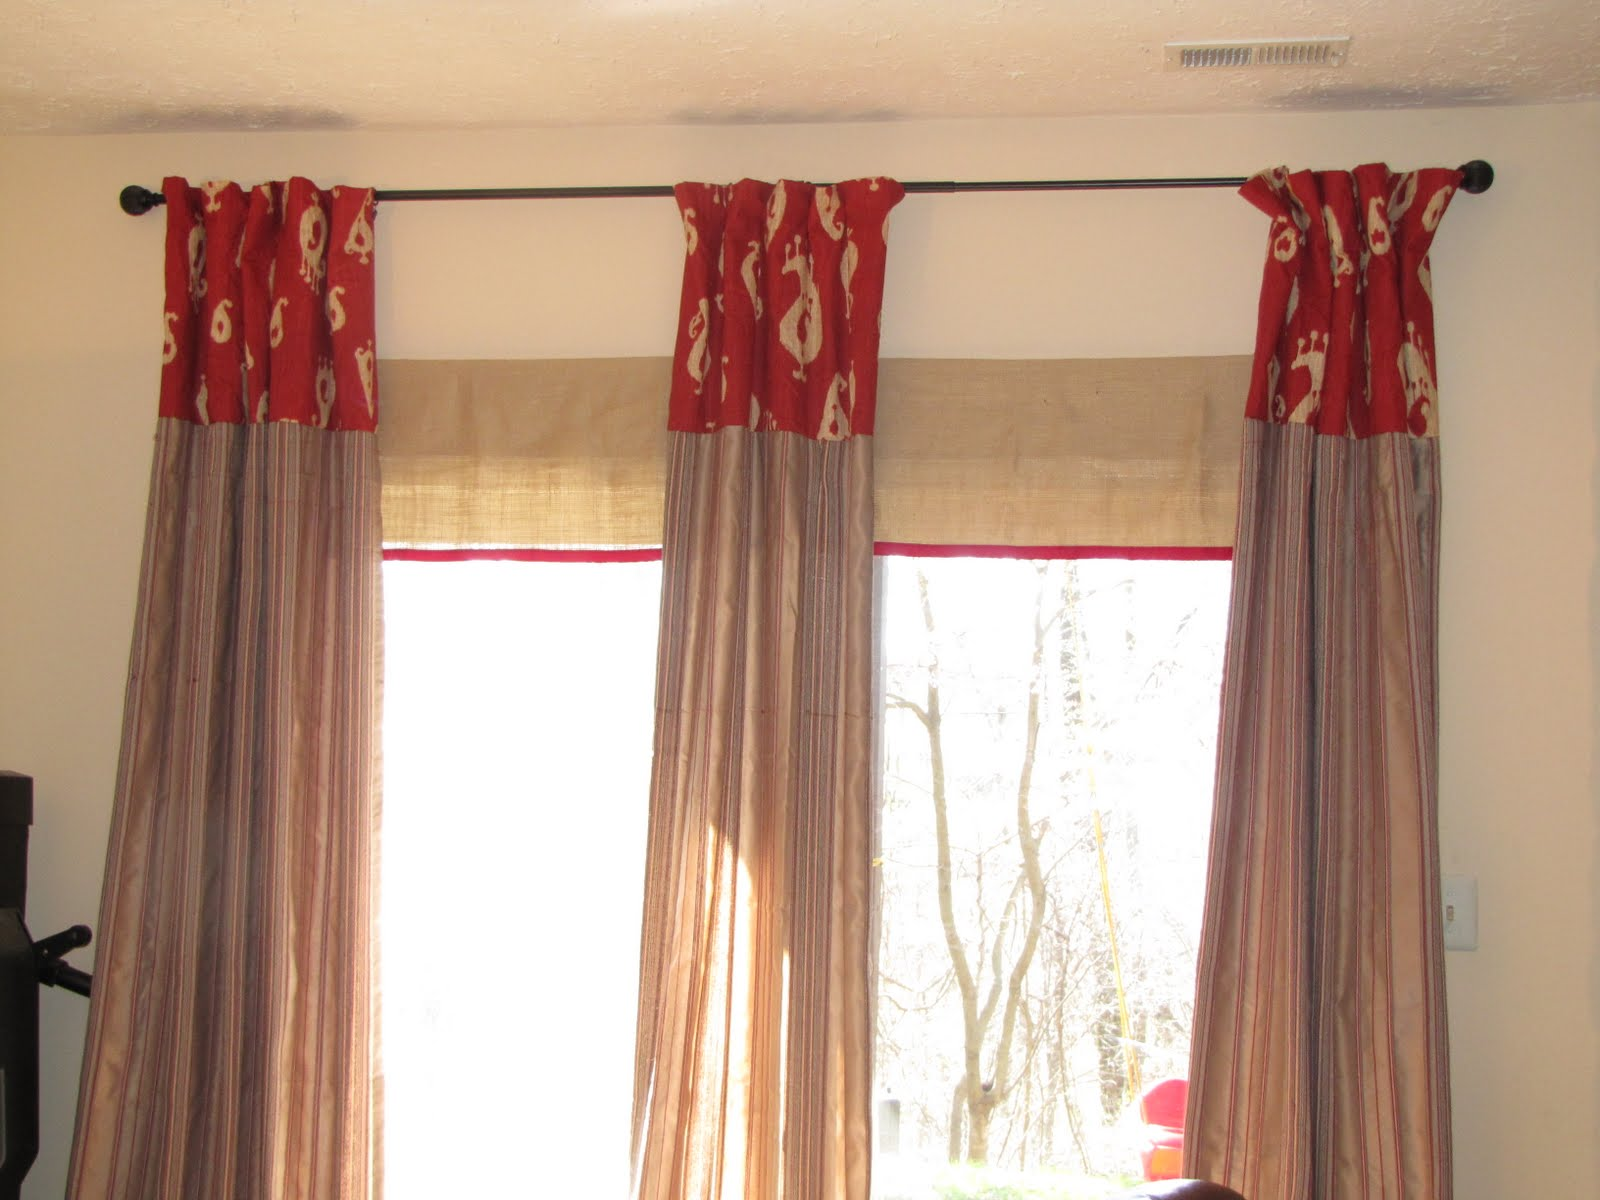 Patio door curtain ideas homesfeed for 3 window curtain design